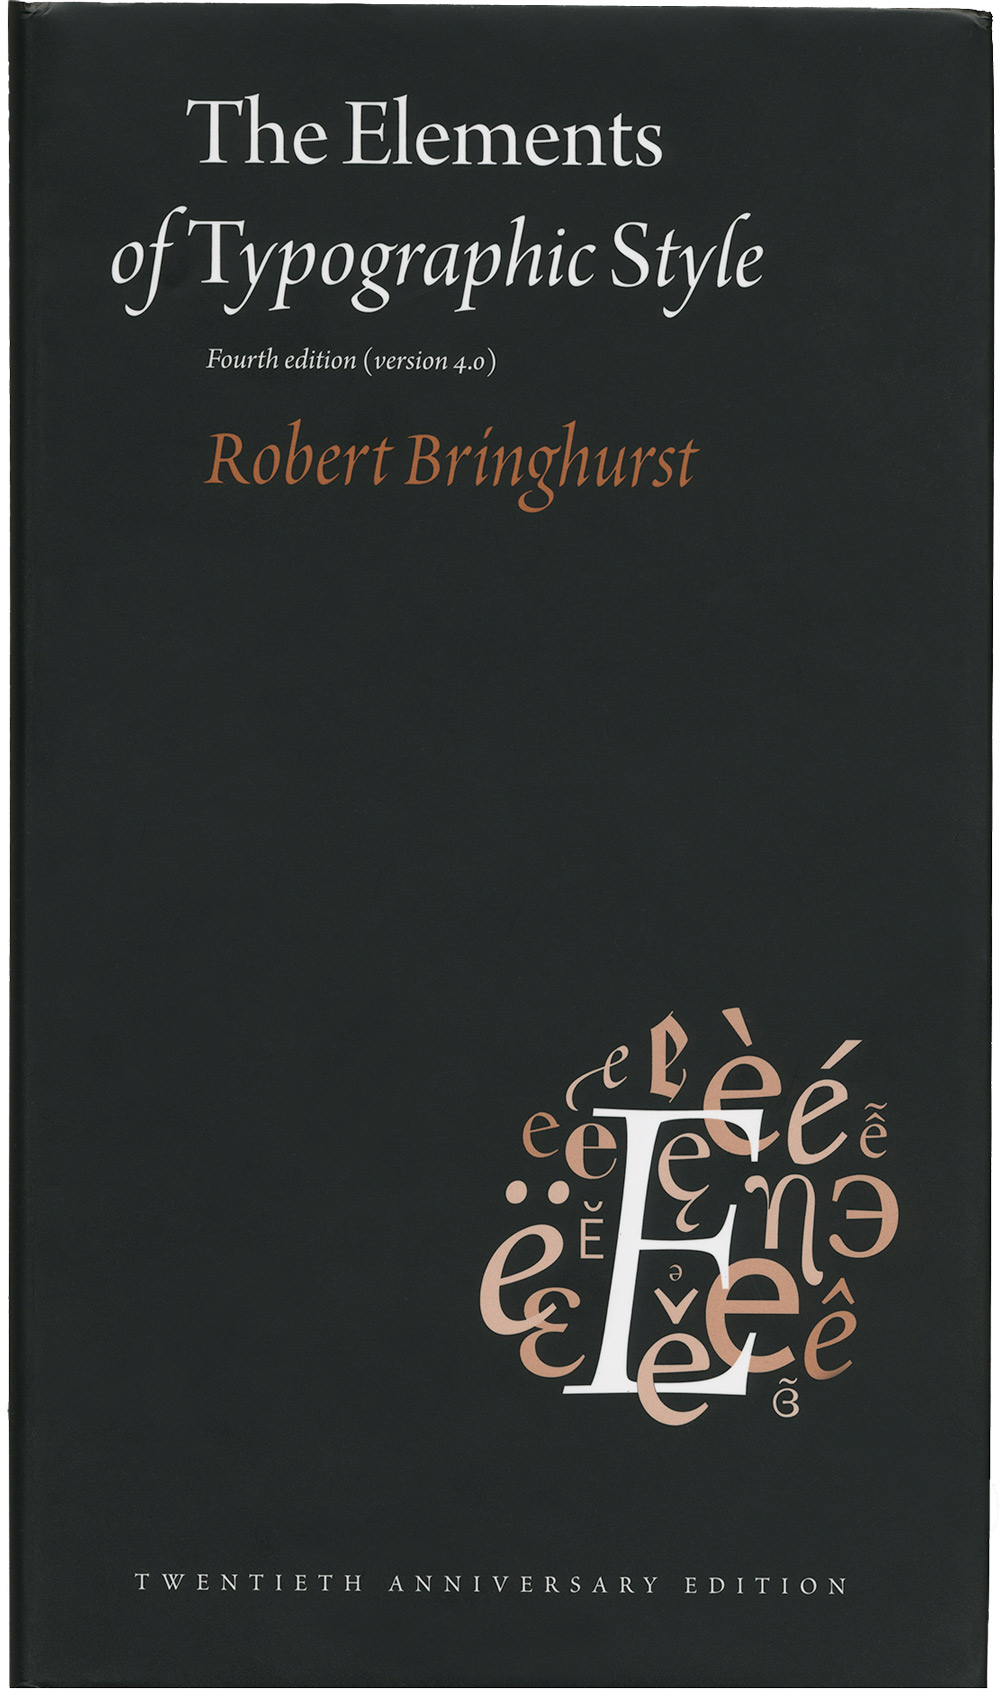 Book Cover Typography Version : The elements of typographic style version typographica